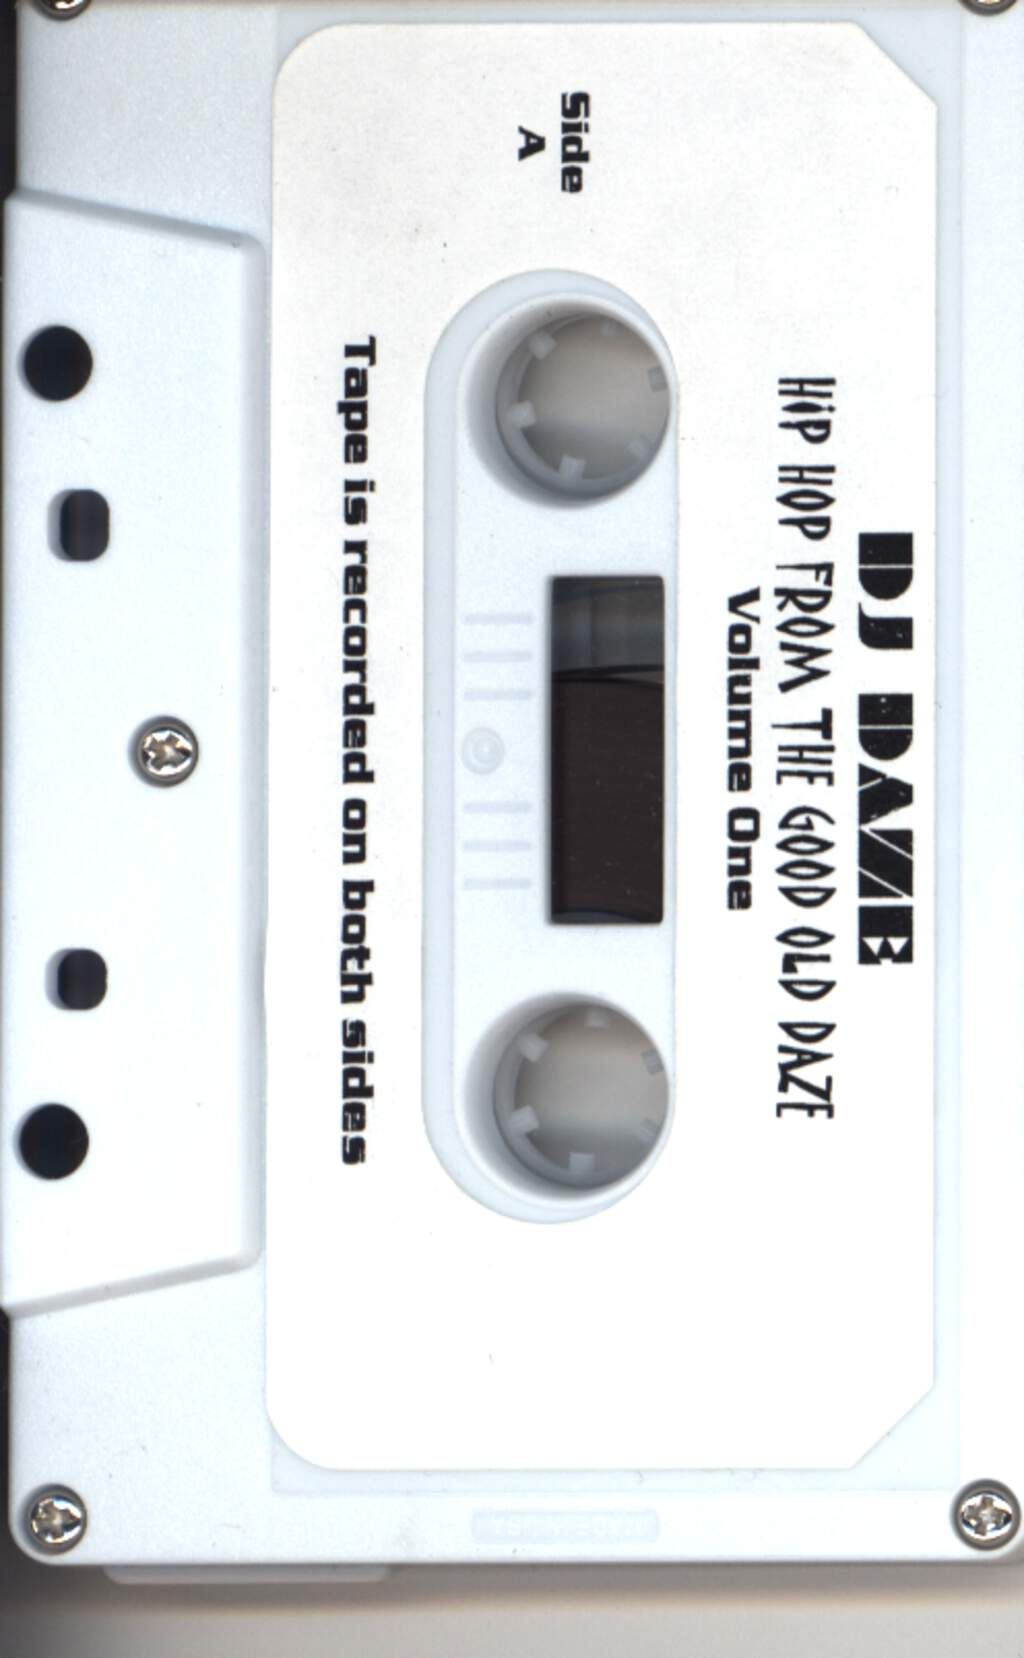 DJ Daze: Hip Hop From The Good Old Daze, Compact Cassette